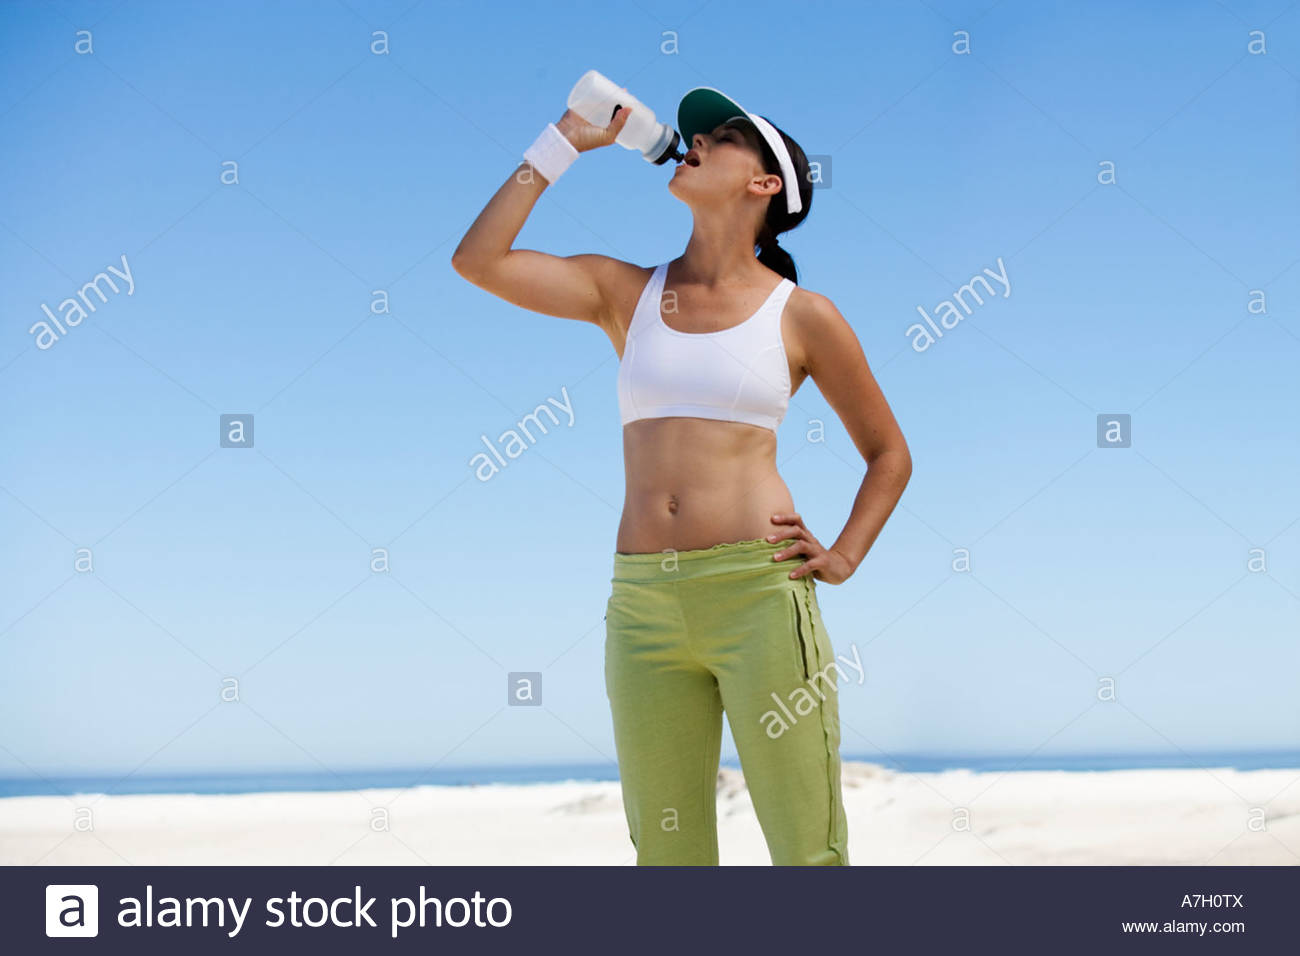 A young woman drinking from a water bottle after exercising - Stock Image